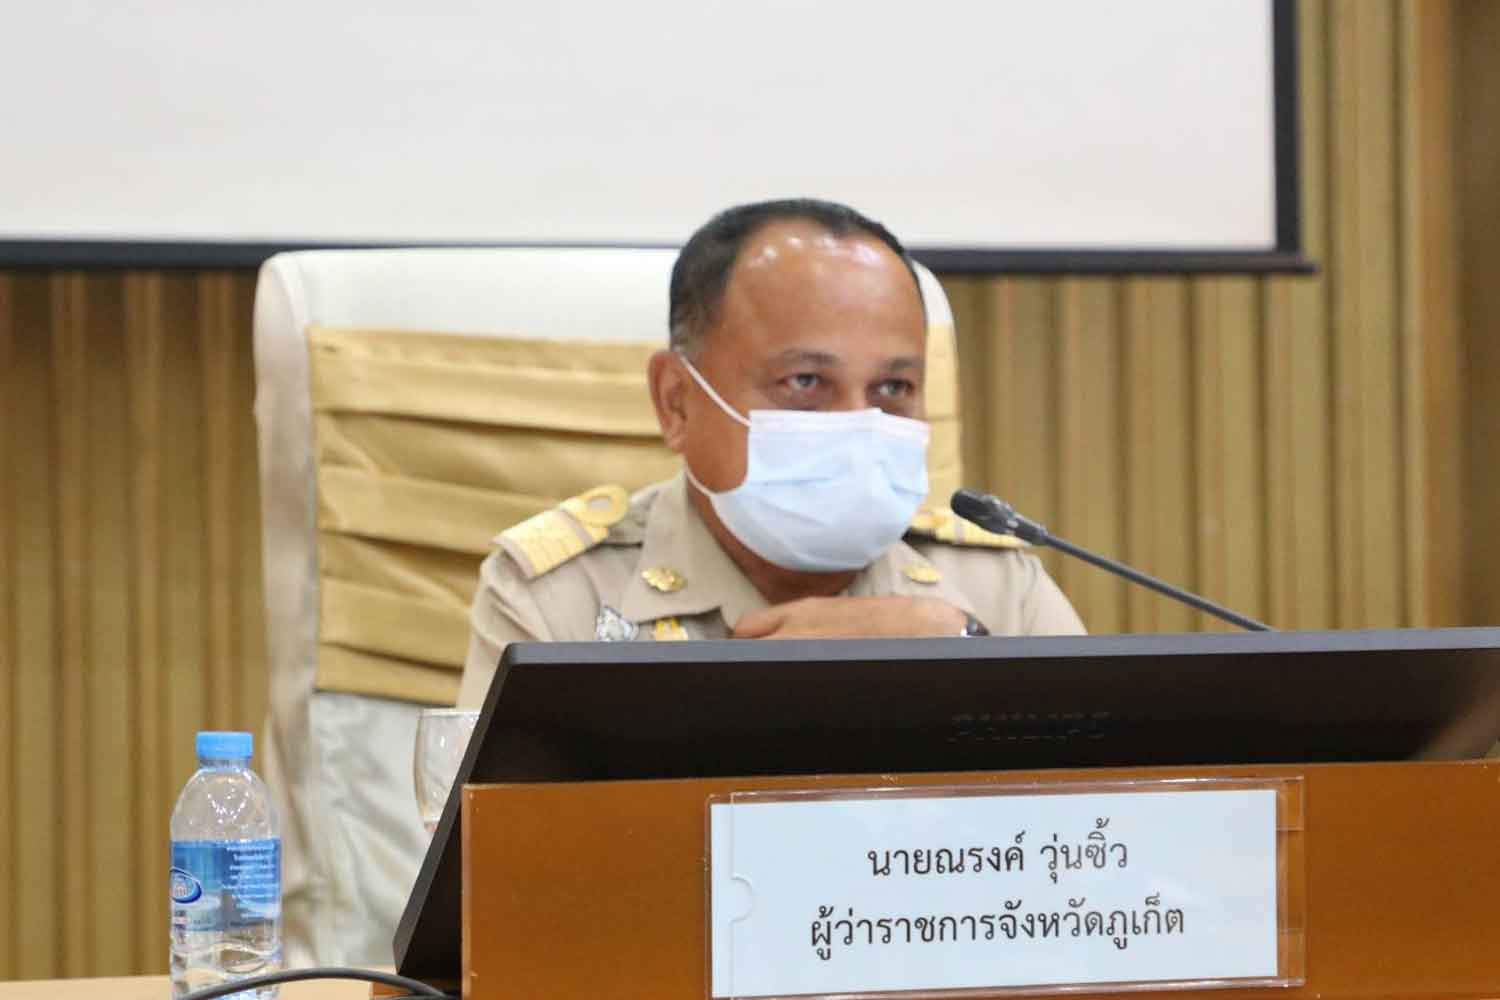 Phuket governor Narong Woonciew at Wednesday's press conference.